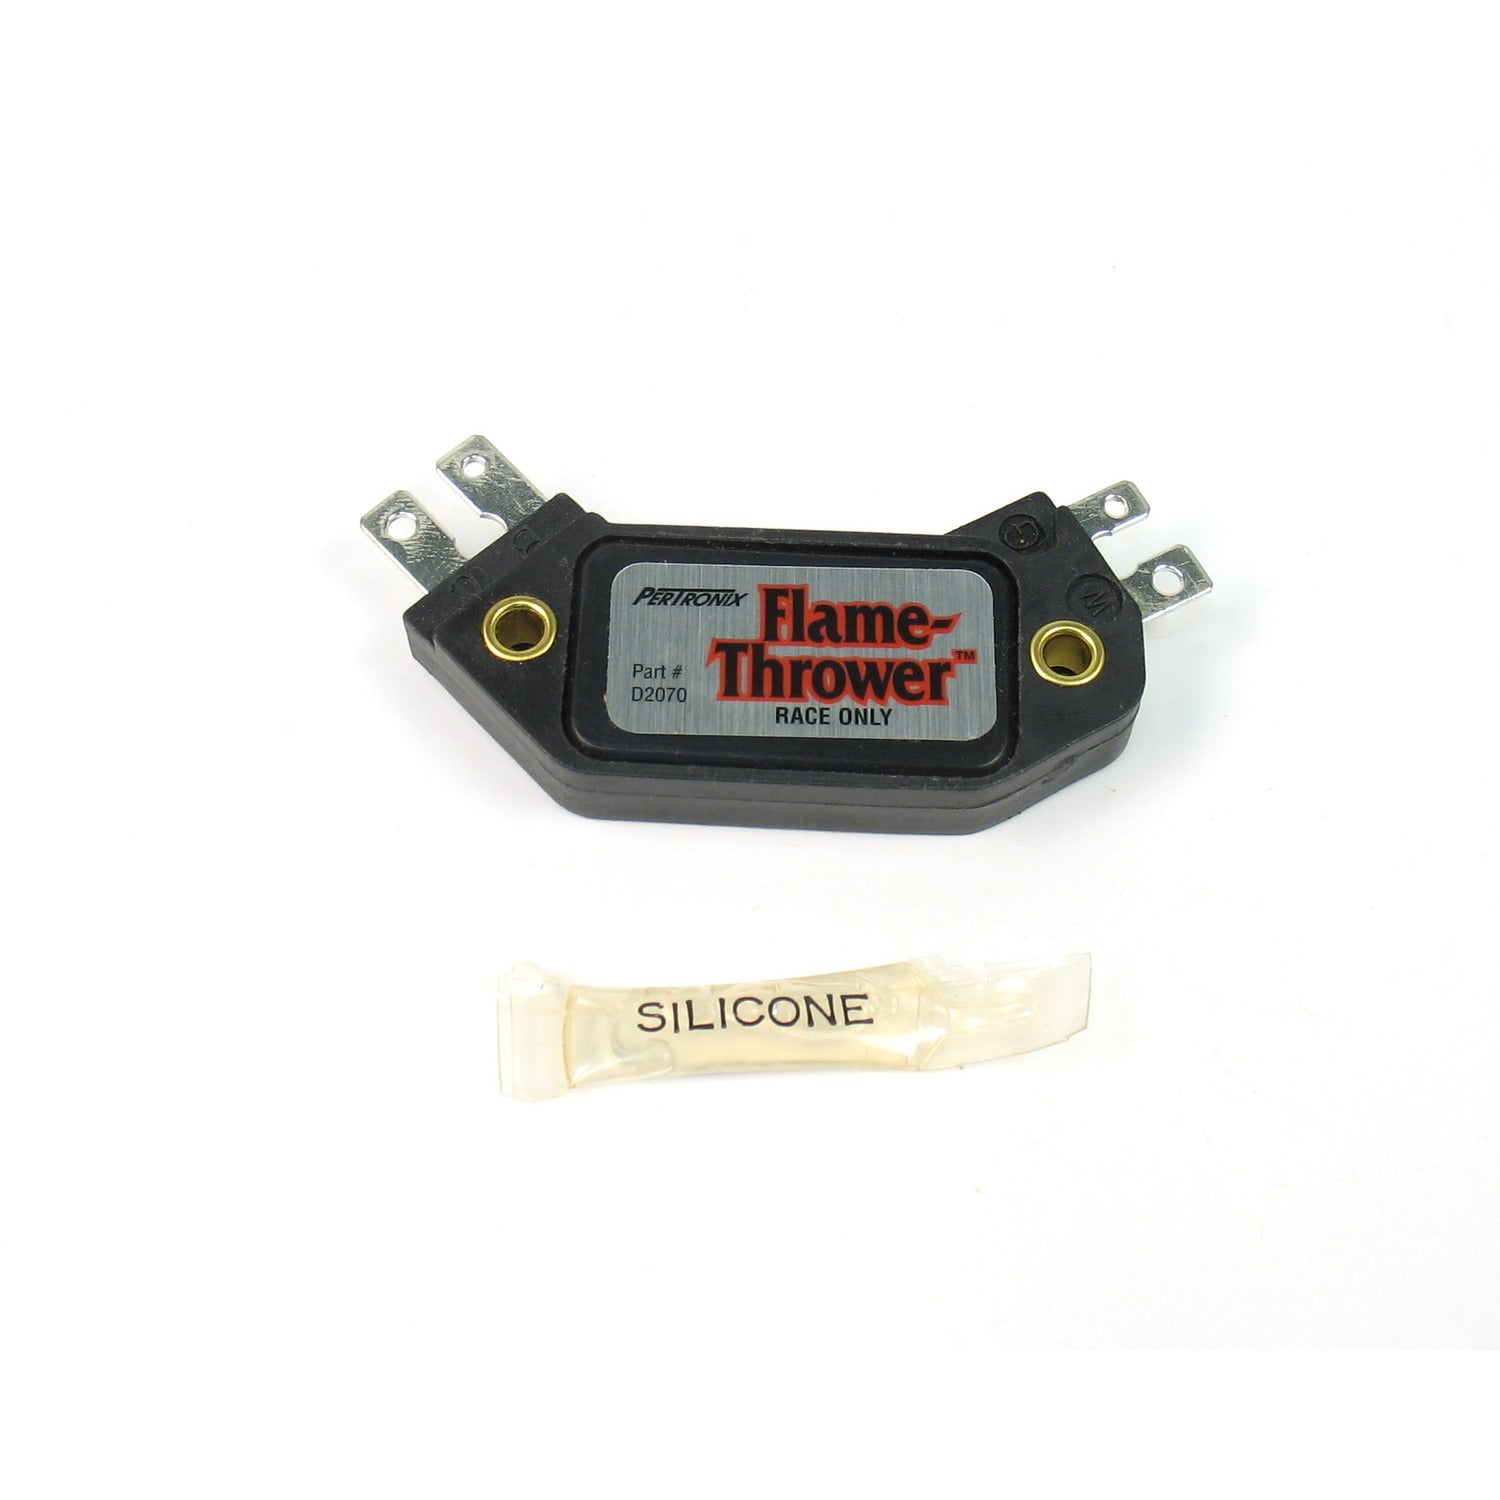 PerTronix D2070 Flame-Thrower HEI GM 4 Pin Race Module